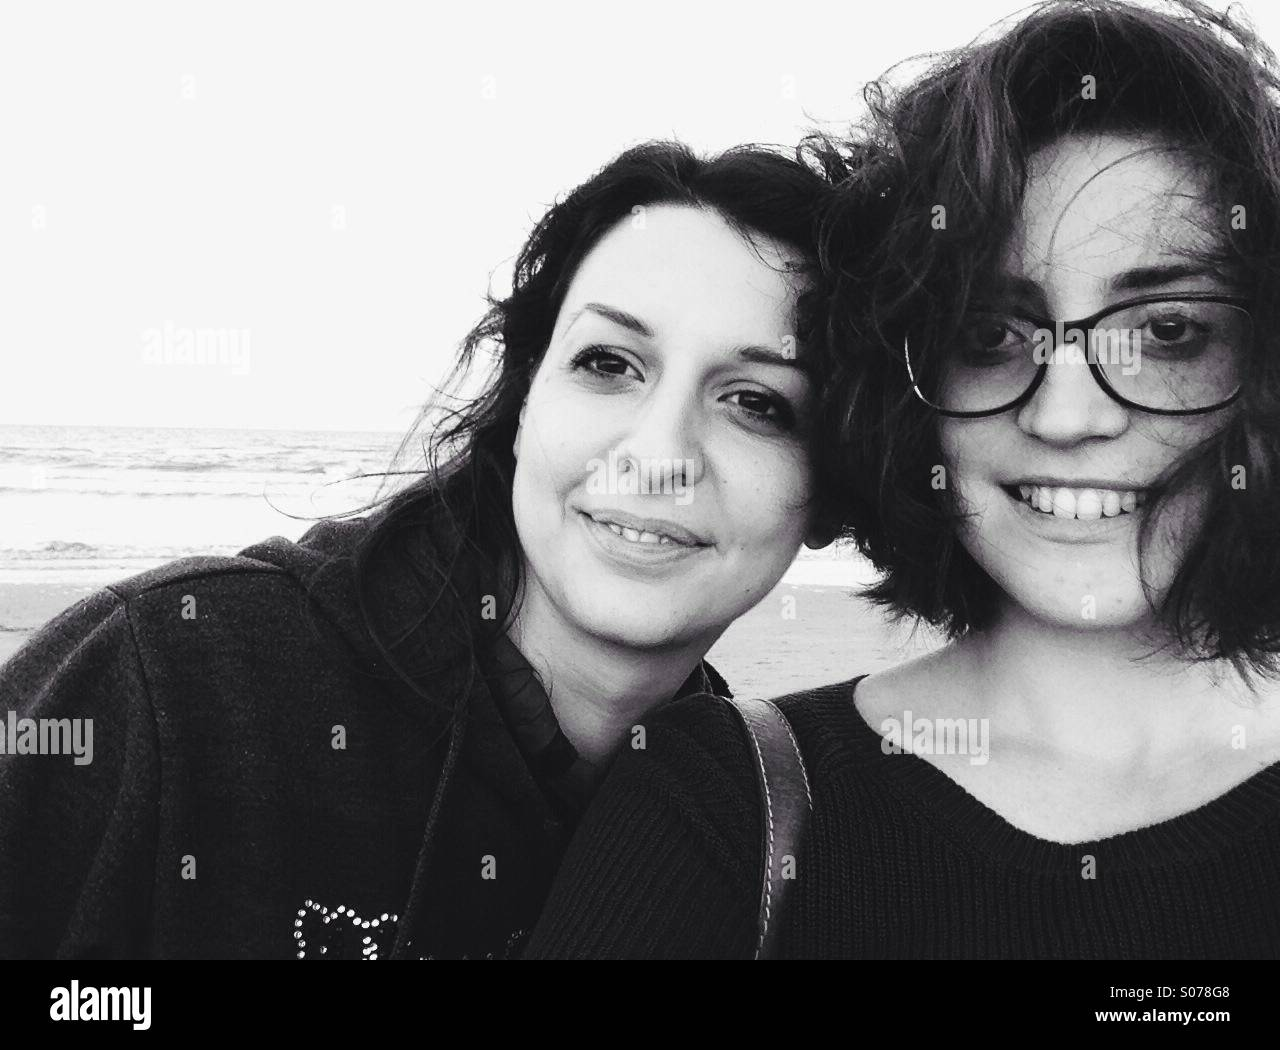 Selfie of two women smiling on a beach in Rimjni, Italy - Stock Image